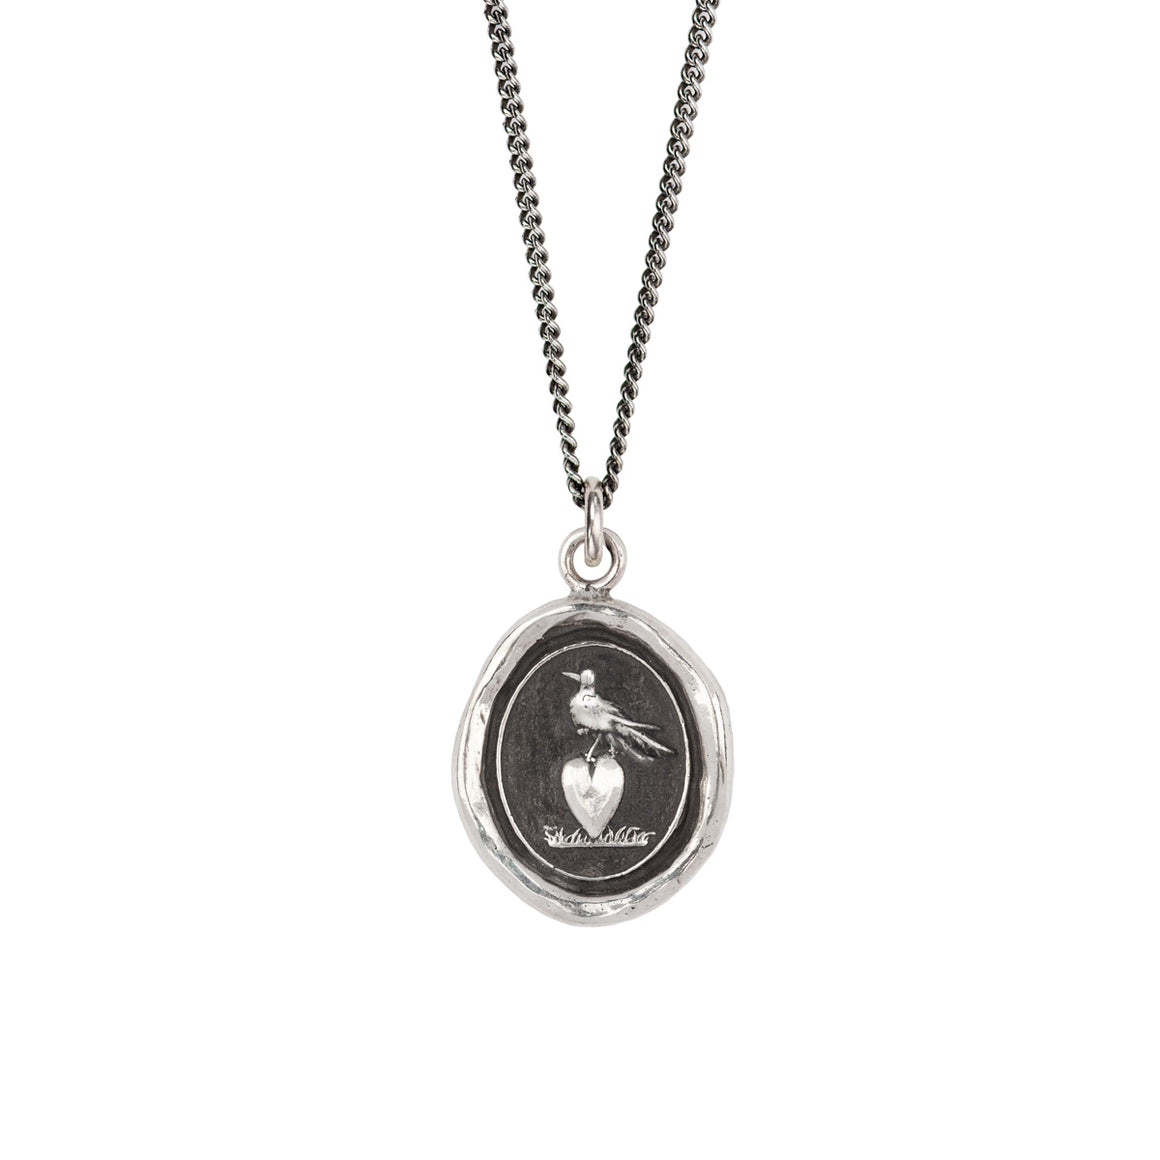 PYRRHA MARTLET & HEART TALISMAN NECKLACE